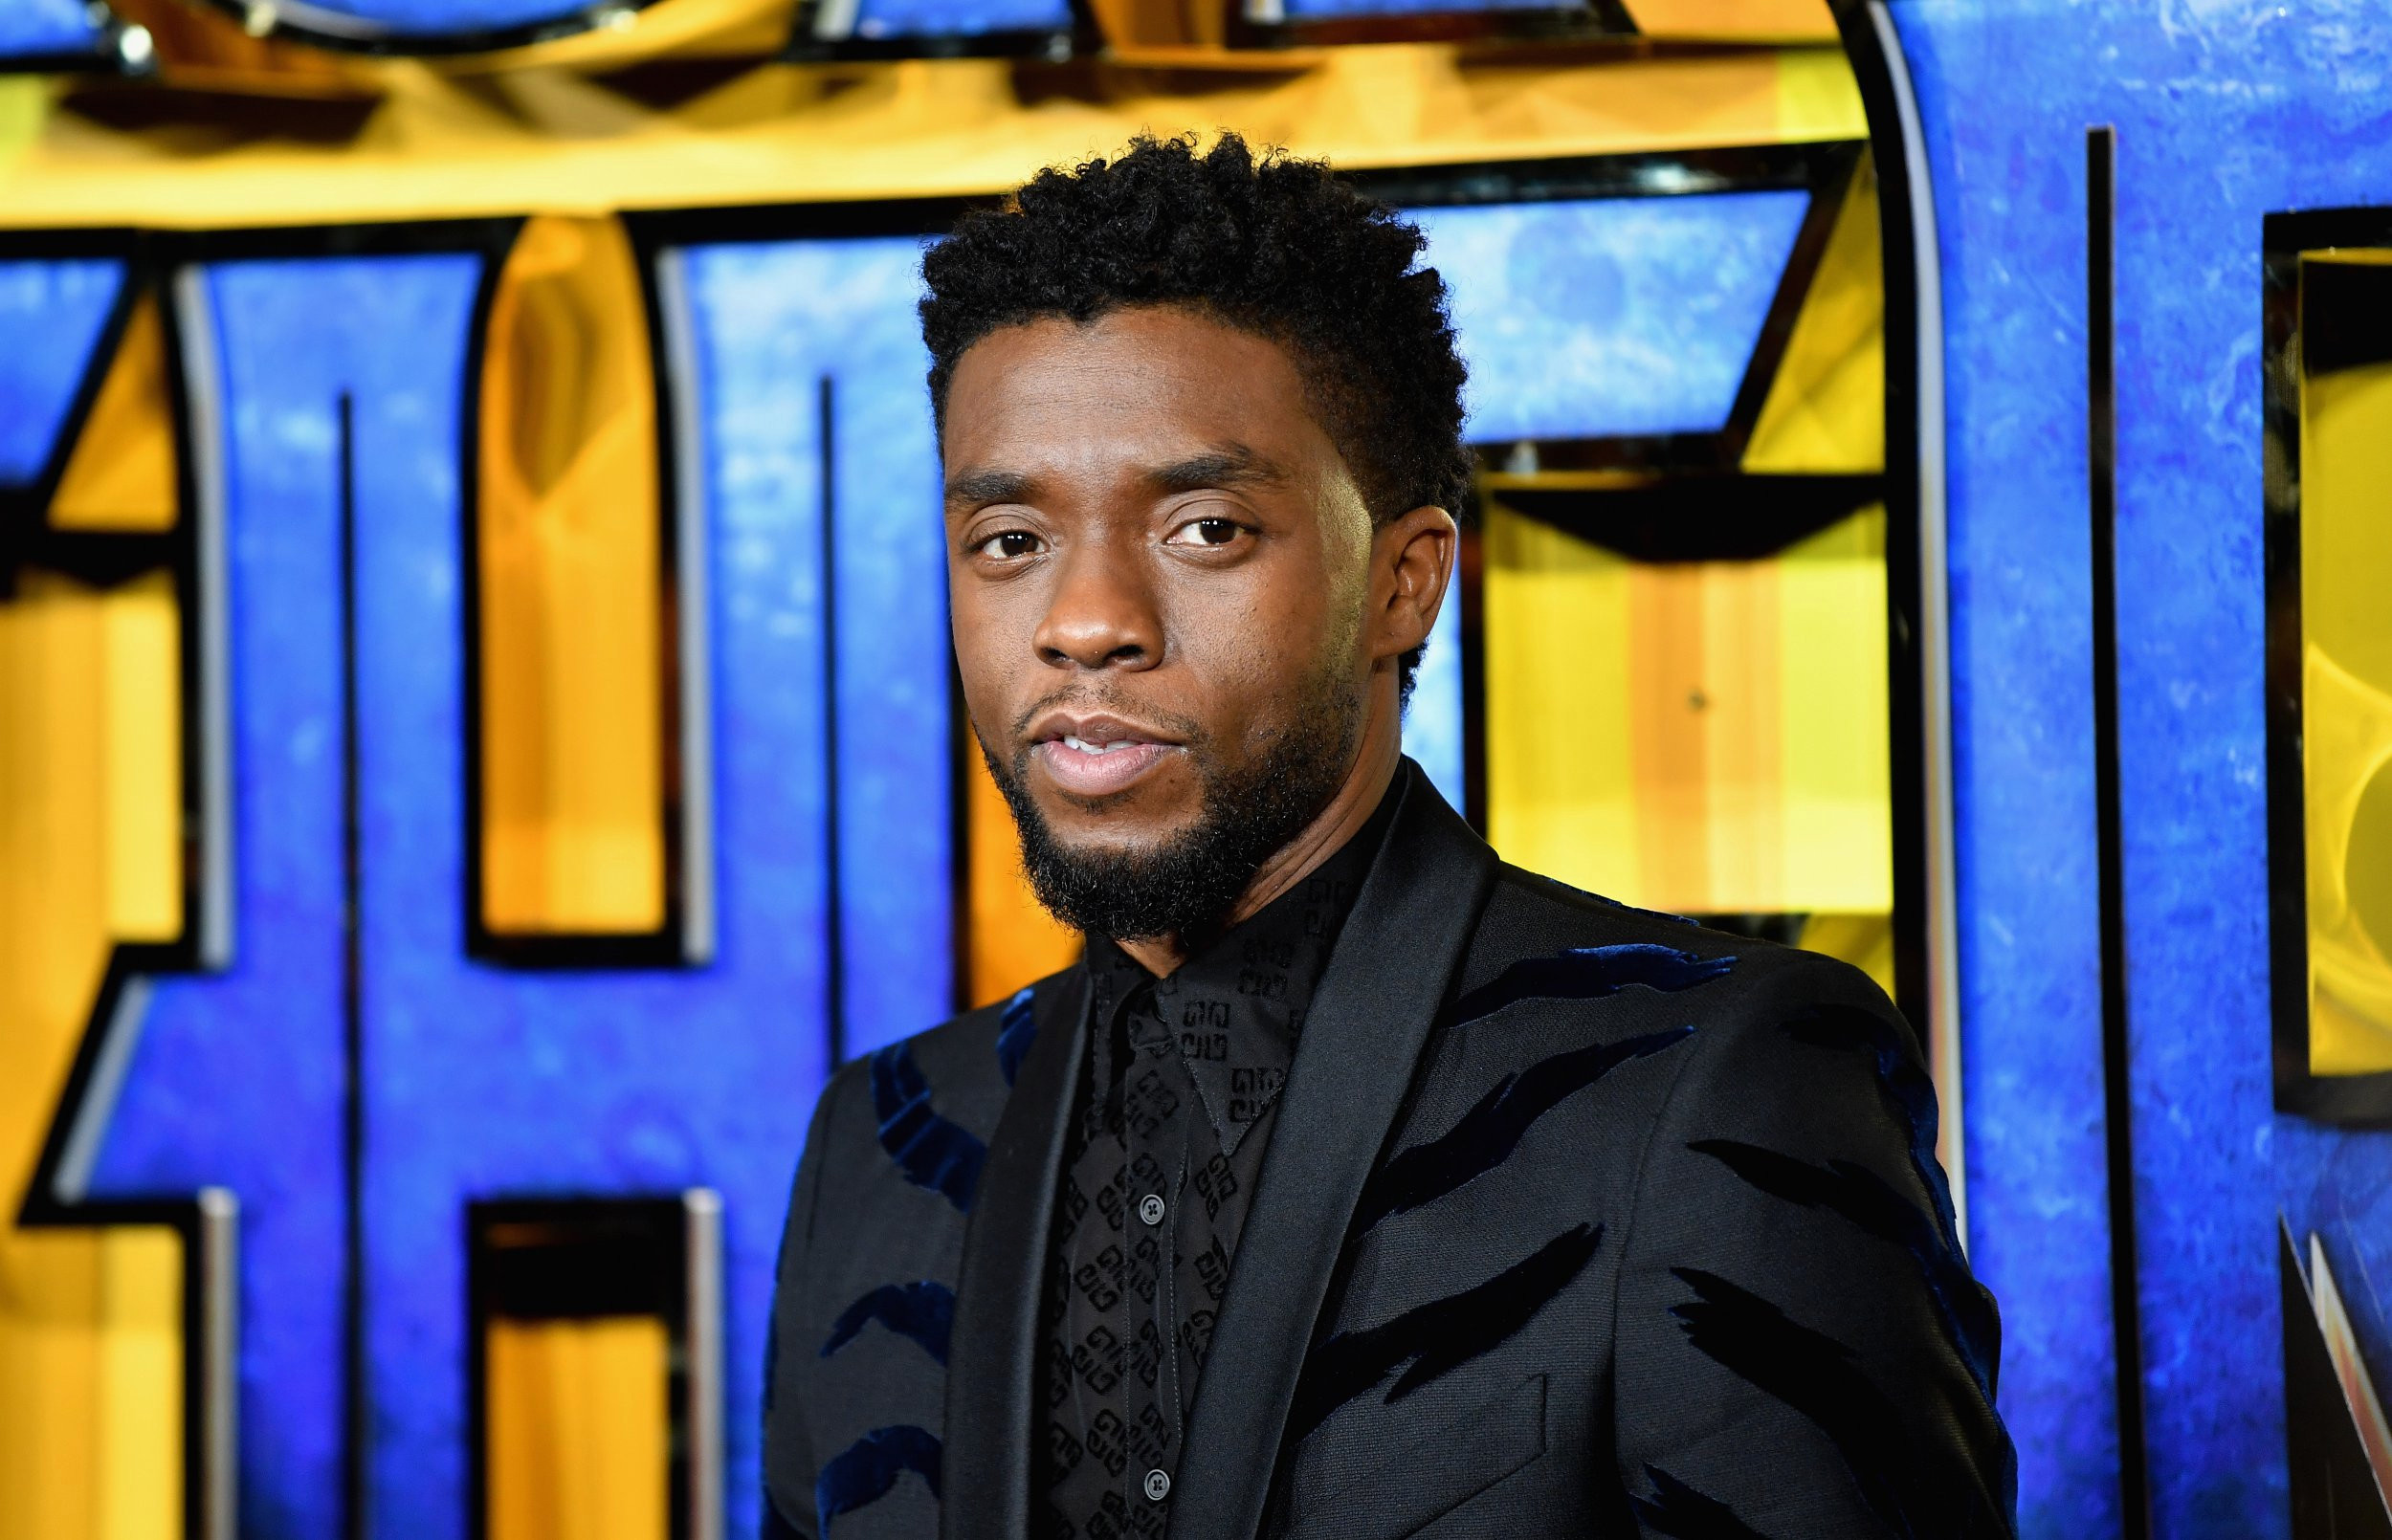 Black Panther star Letitia Wright pays tribute to late co-star Chadwick Boseman after posthumous Oscar nomination: 'I wish I had got to say goodbye'